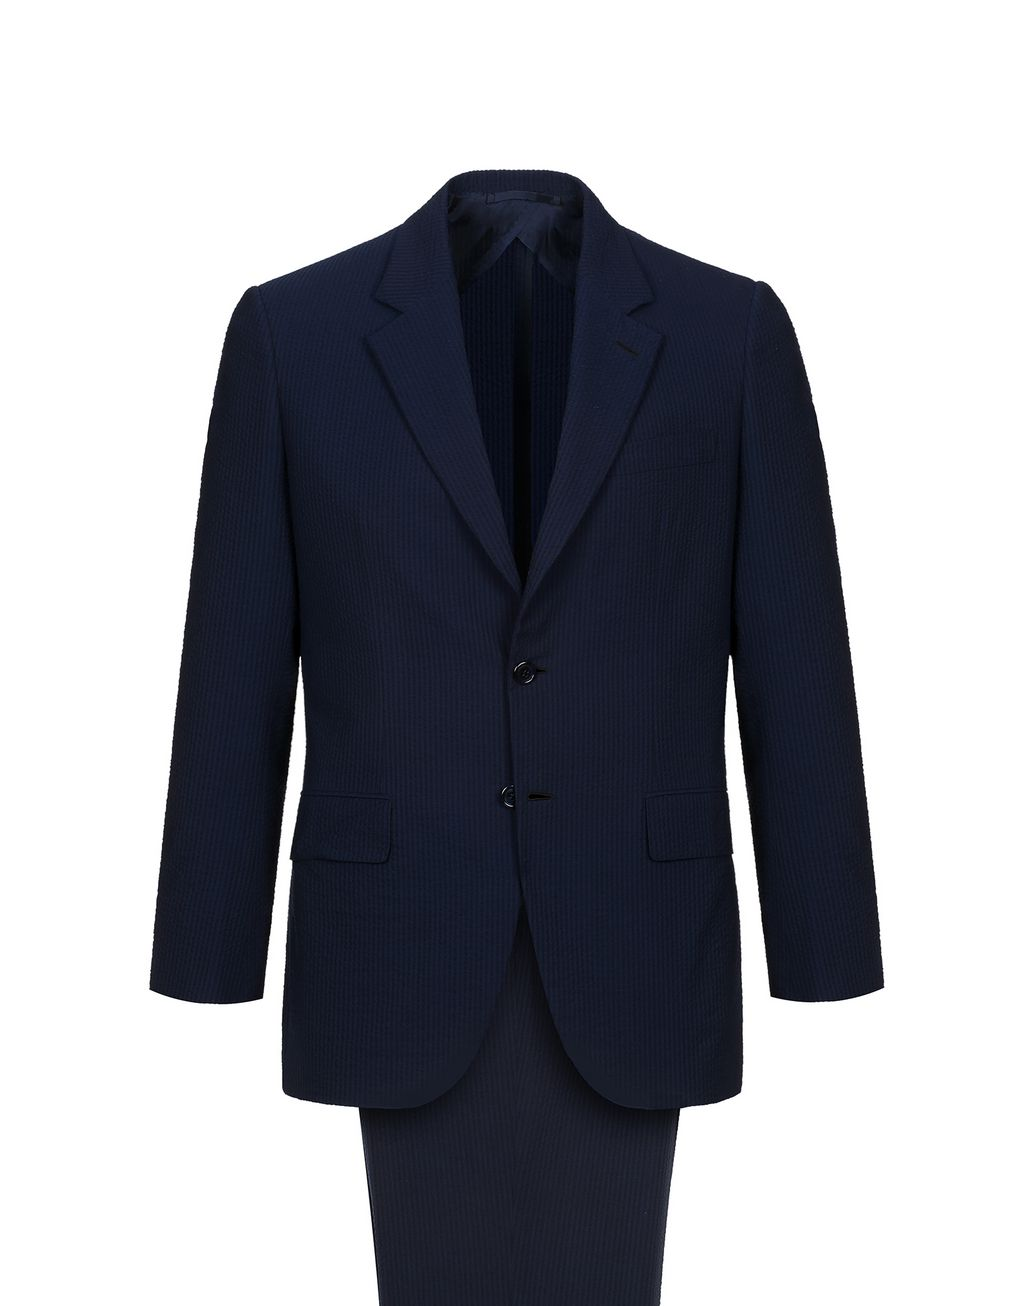 BRIONI Navy Blue Seer Sucker Celio Suit Suits & Jackets Man f